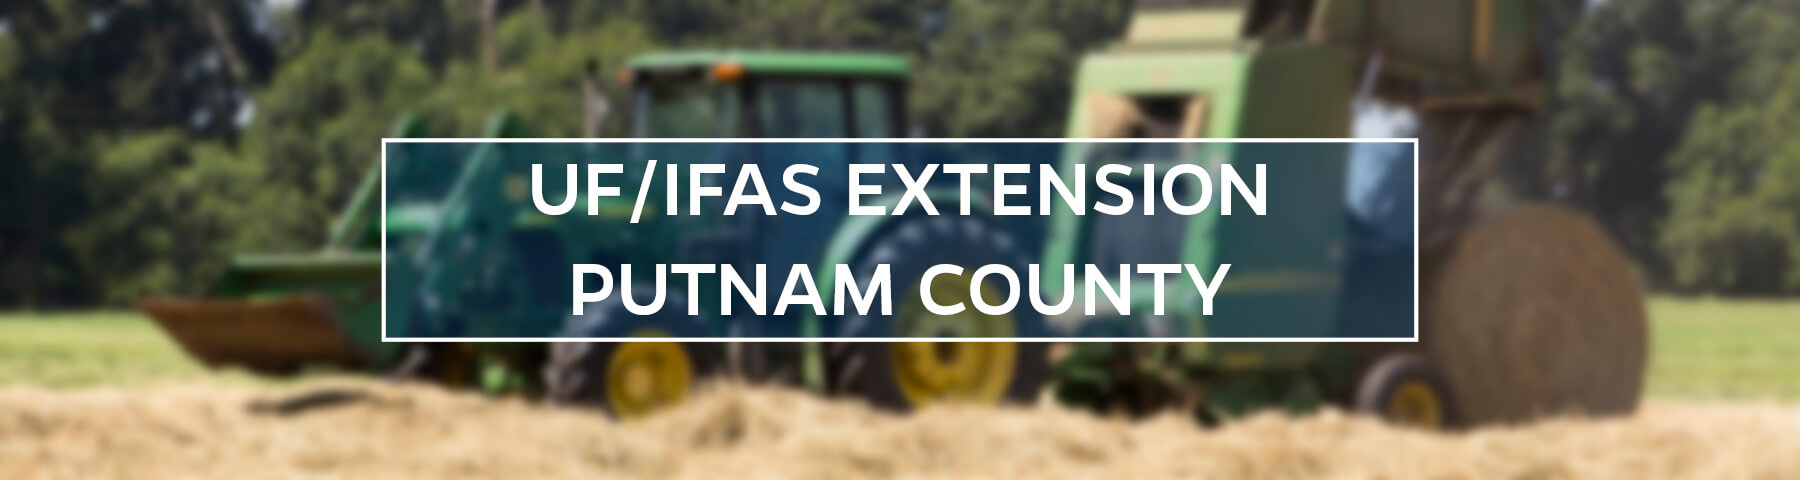 UF/IFAS Extension Putnam County